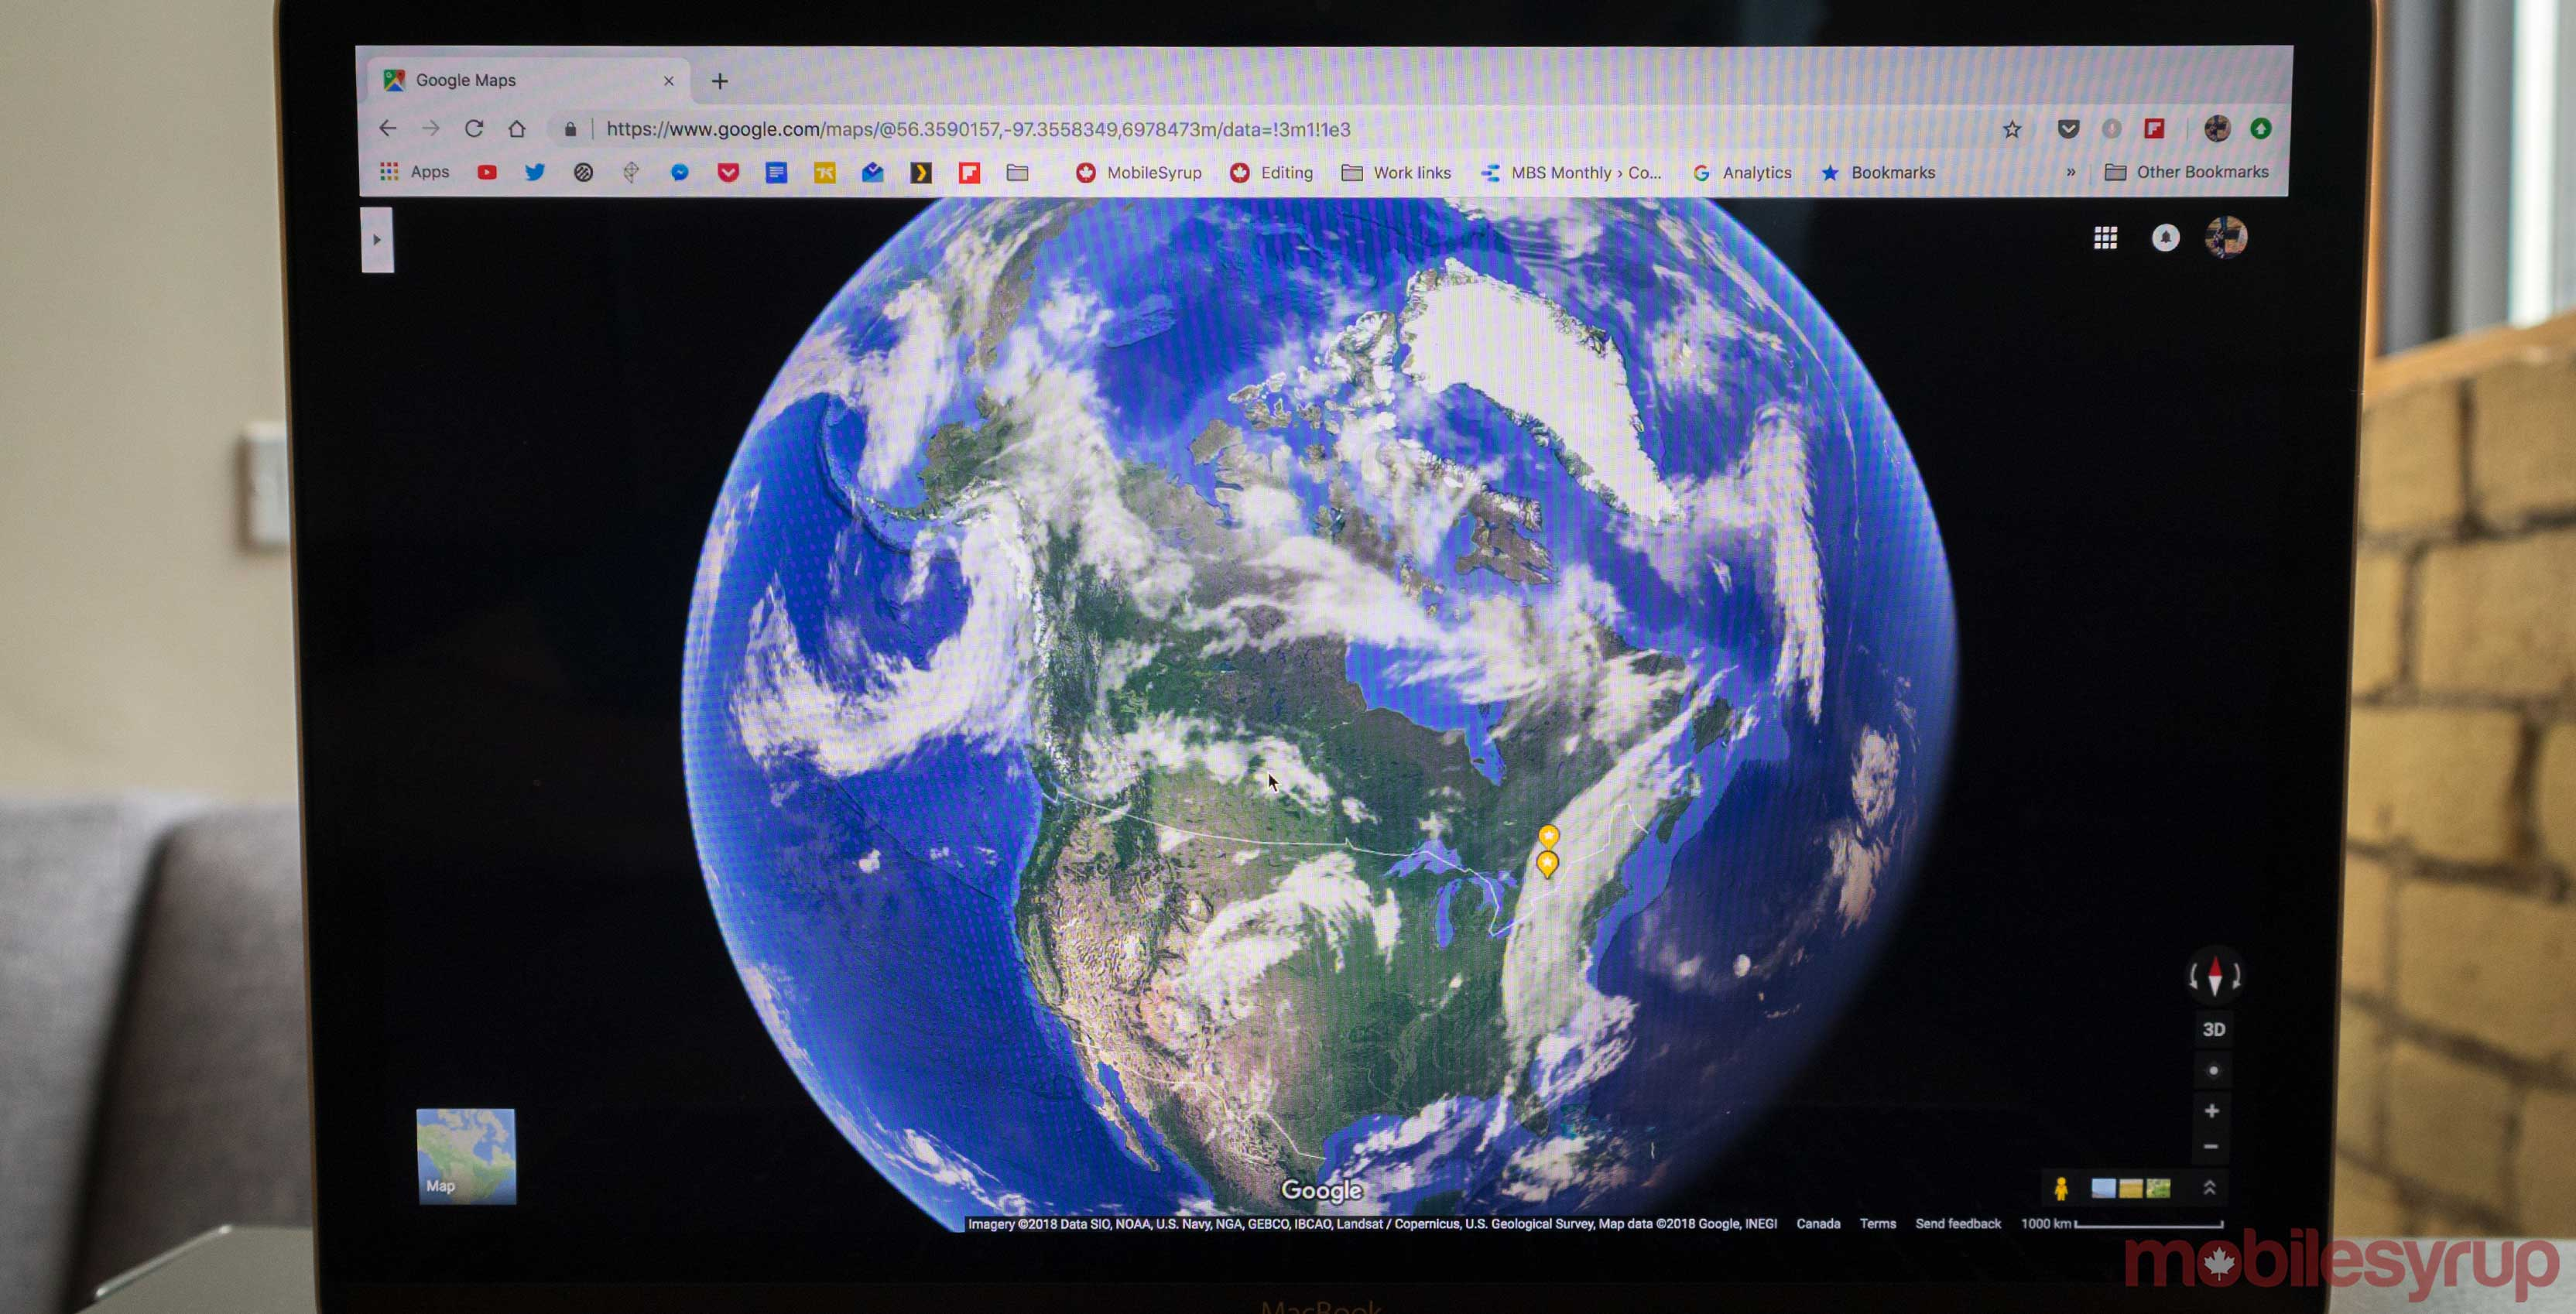 Google Maps has been updated to include a globe view on united states aerial maps, google earth search, google earth views from satellite, google earth update, google logo maker, google world globe map, home maps, google earth home, google movies logo, google map in phnom penh, google earth address, googlr maps, google earth haiti map, satellite view maps, google earth map missouri, aerial view maps, google movie maker, google earth ships, google hybrid map,